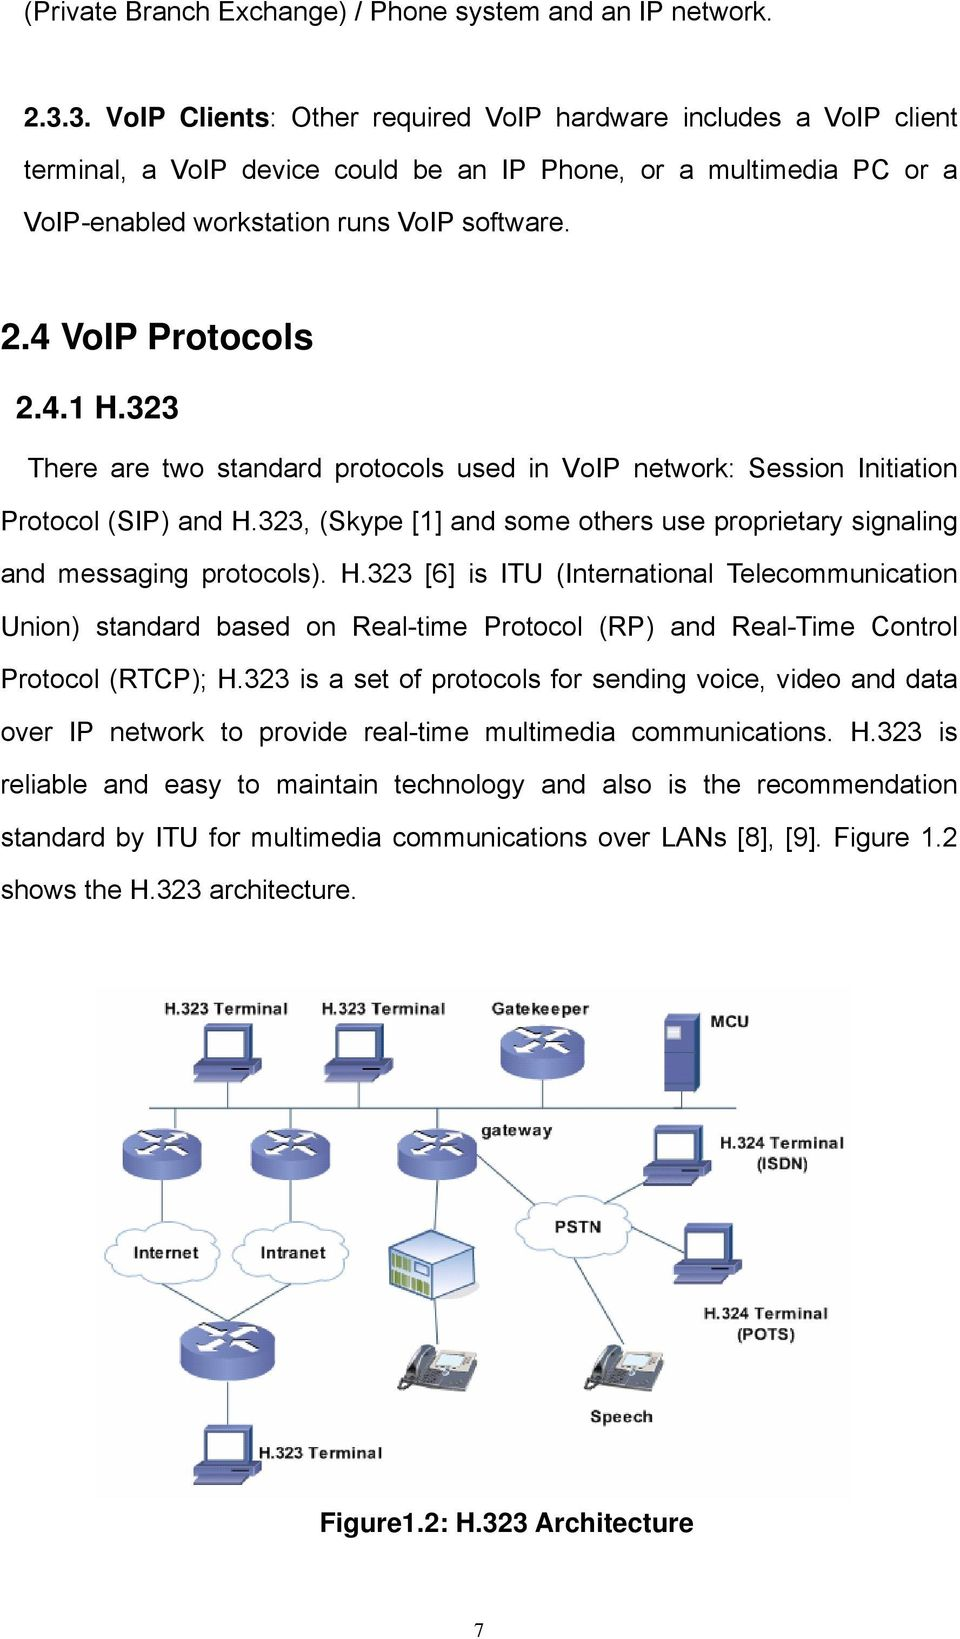 4 VoIP Protocols 2.4.1 H.323 There are two standard protocols used in VoIP network: Session Initiation Protocol (SIP) and H.